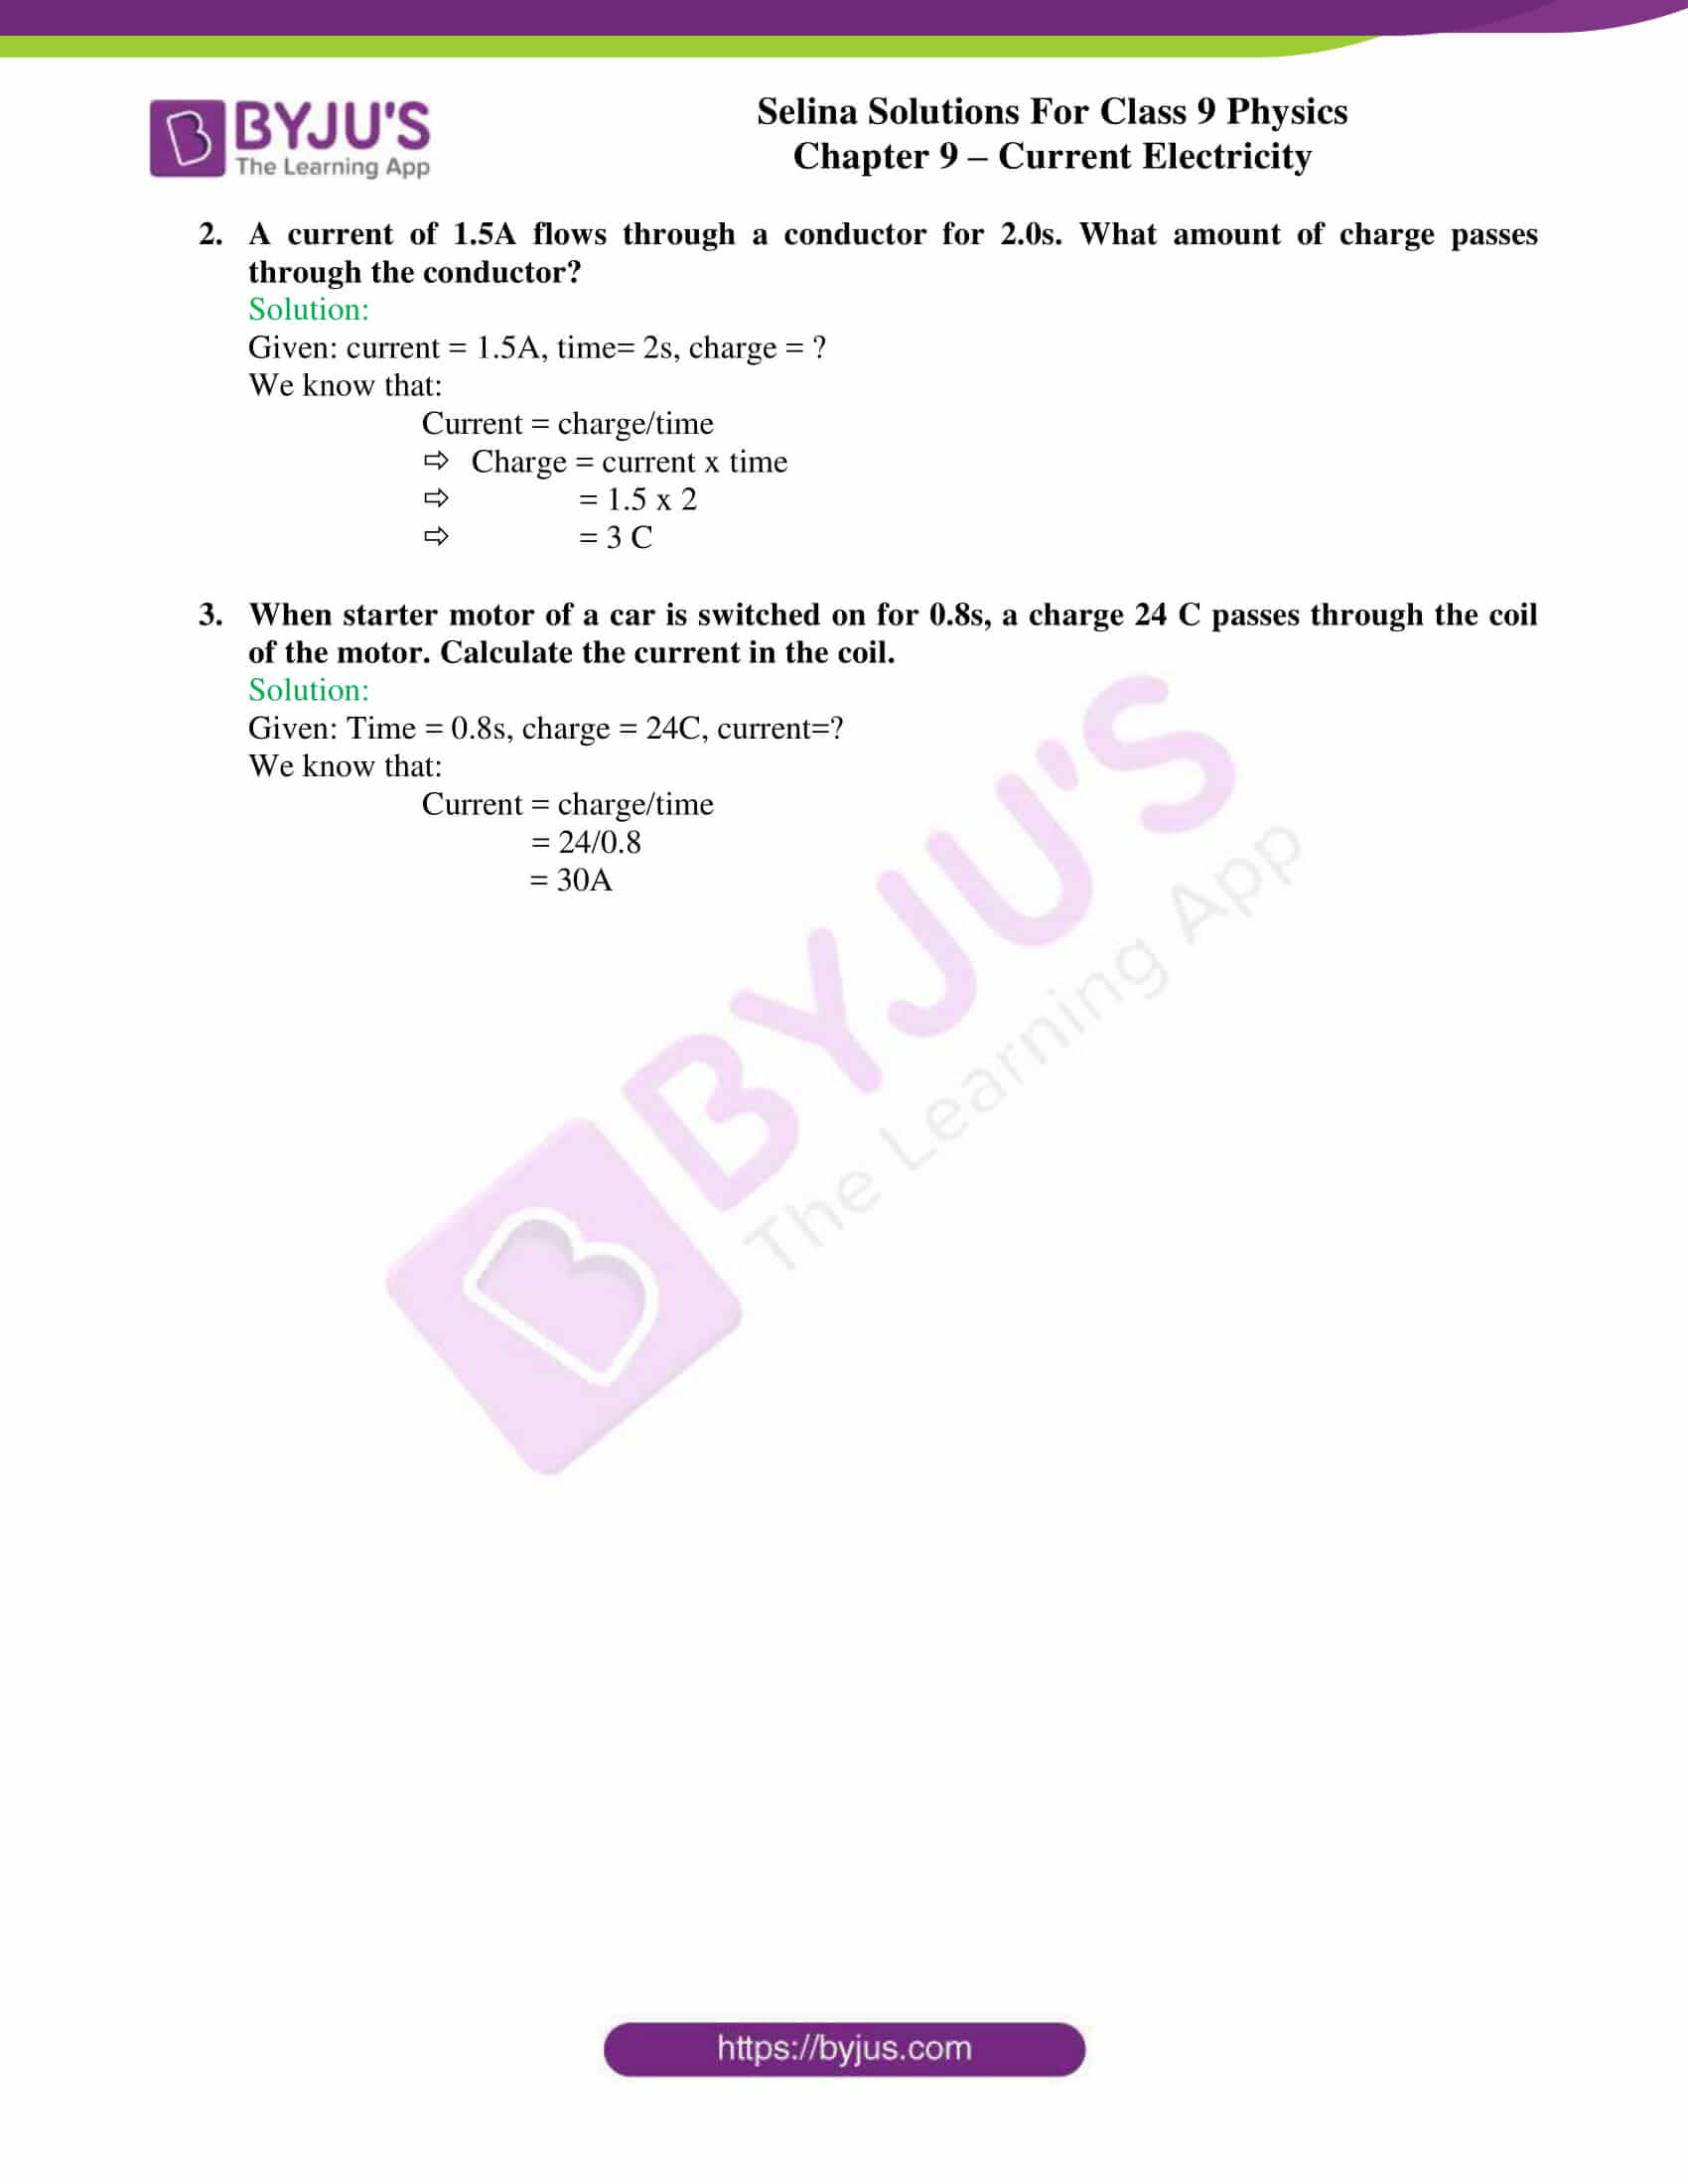 selina solutions class 9 physics chapter 9 Current Electricity part 08